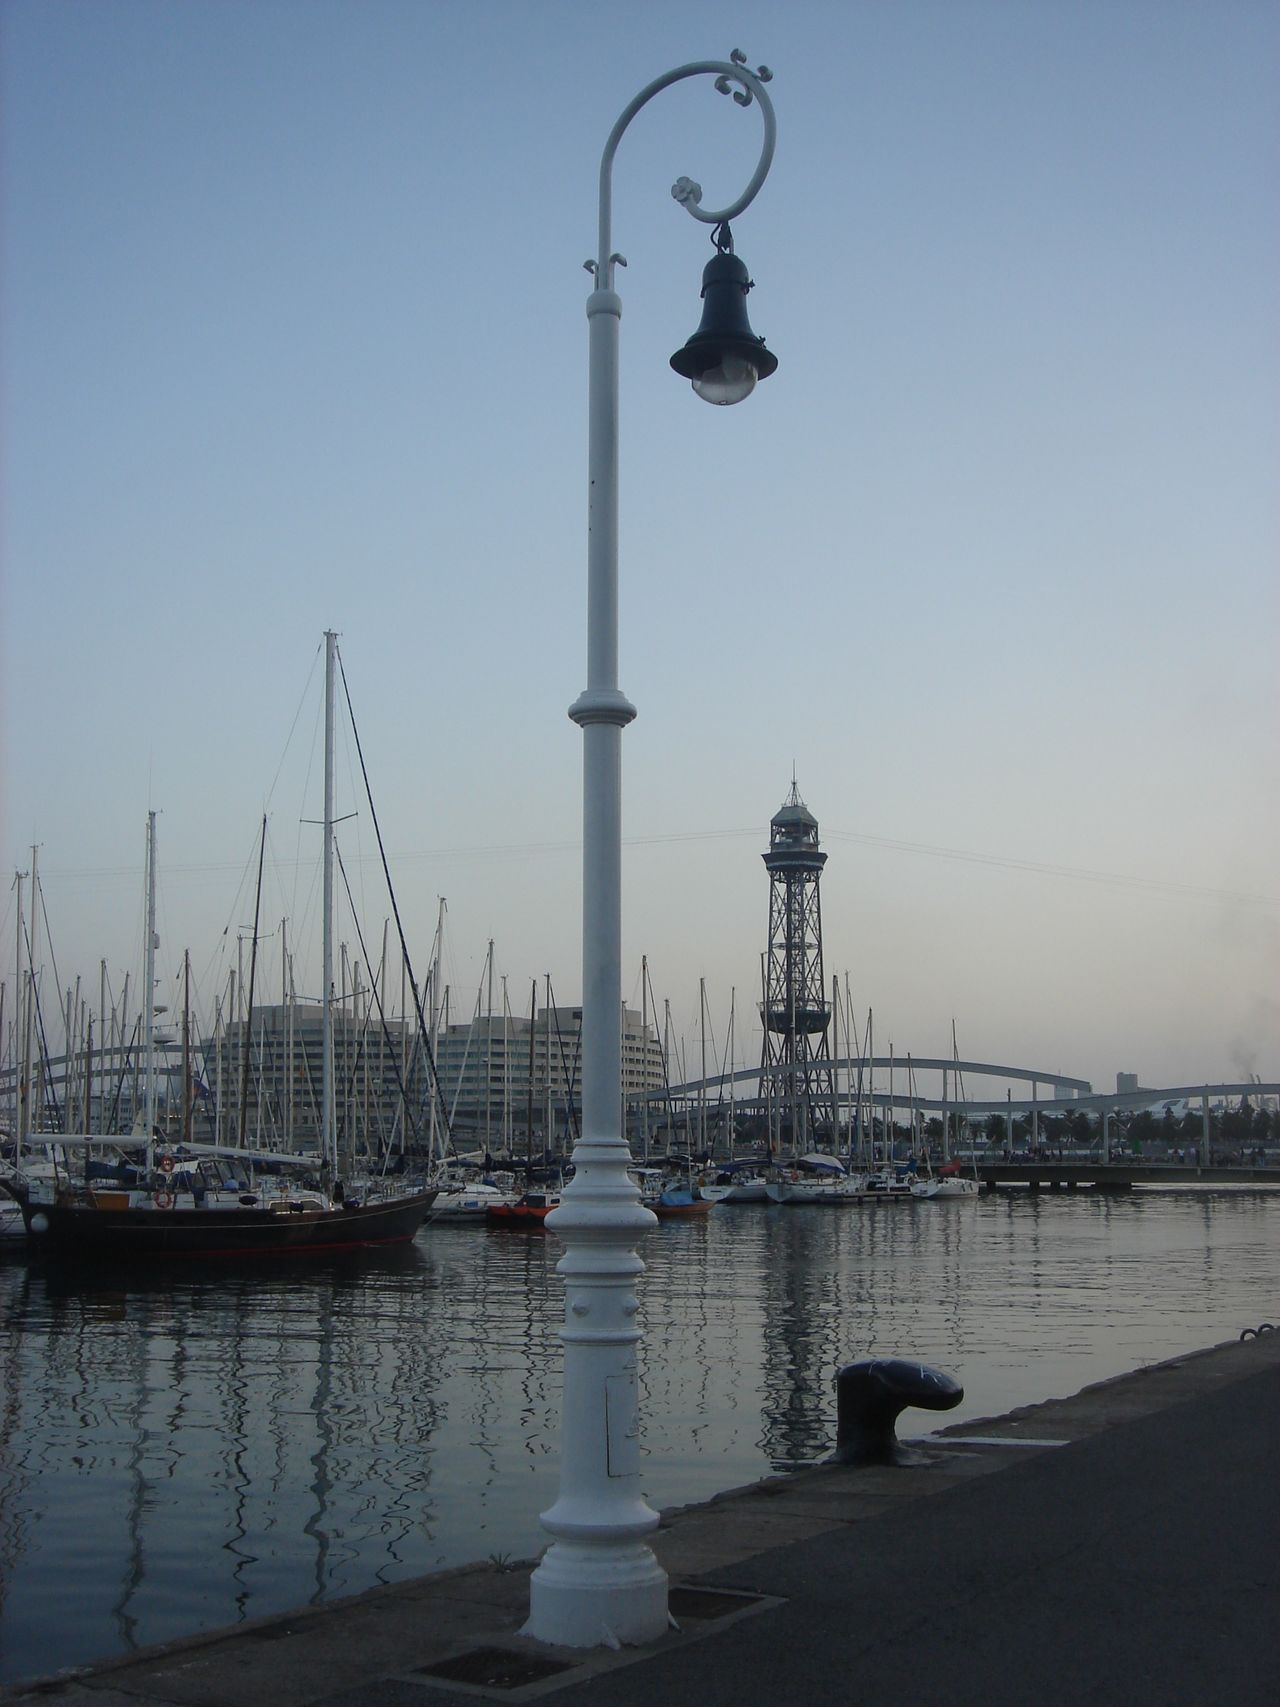 #boat #fog #marina #harbor #sailboats #light #navigator #sailing #veleiro Harbor Nautical Vessel Sailor Street Light Transportation